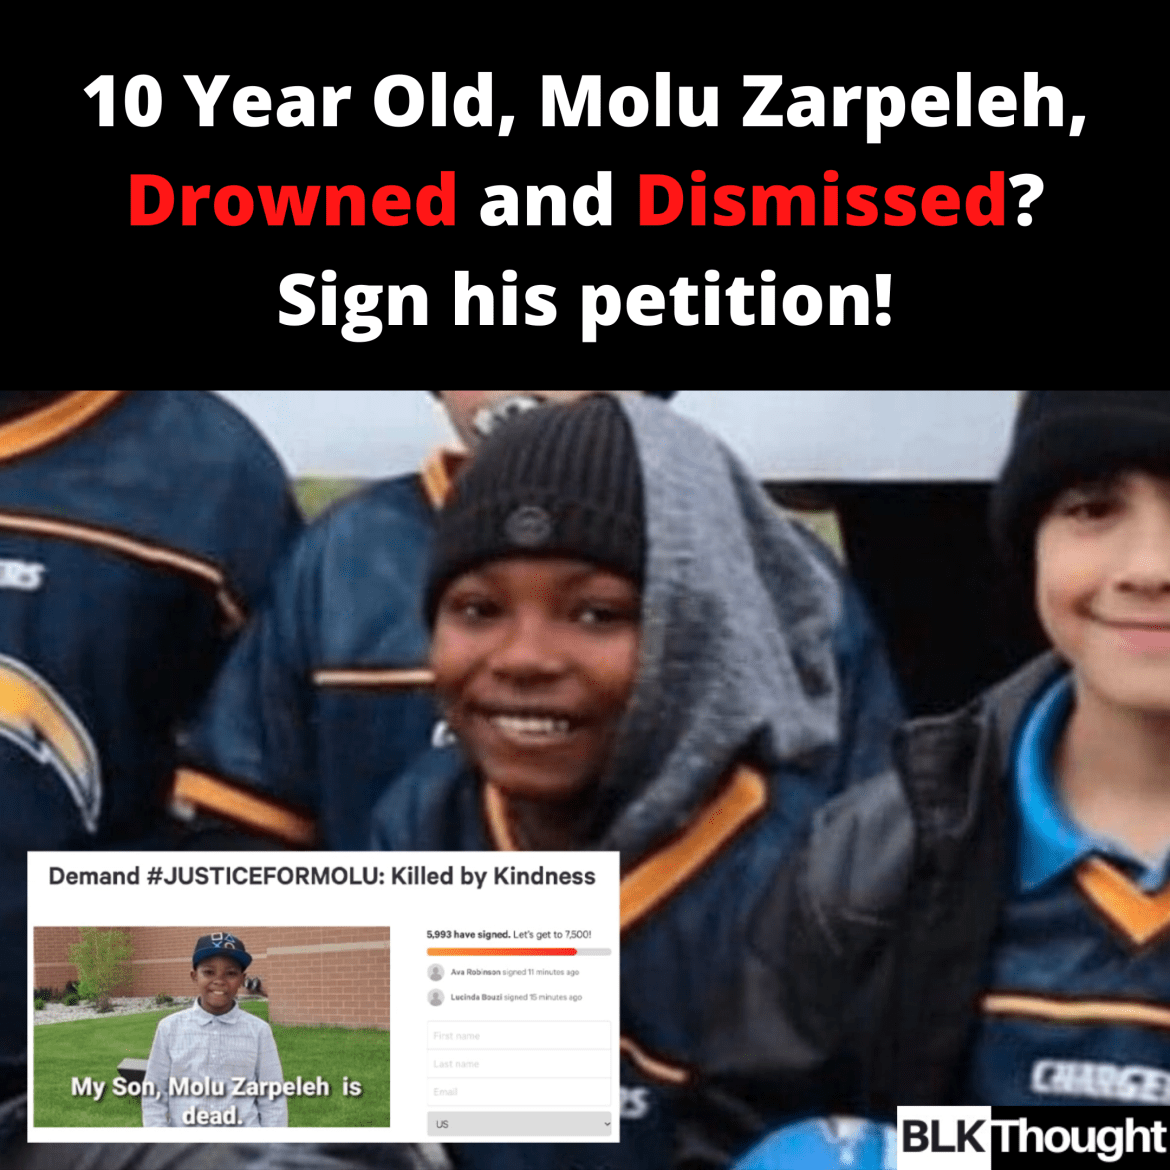 10 Year Old, Molu Zarpeleh, Drowned and Dismissed?